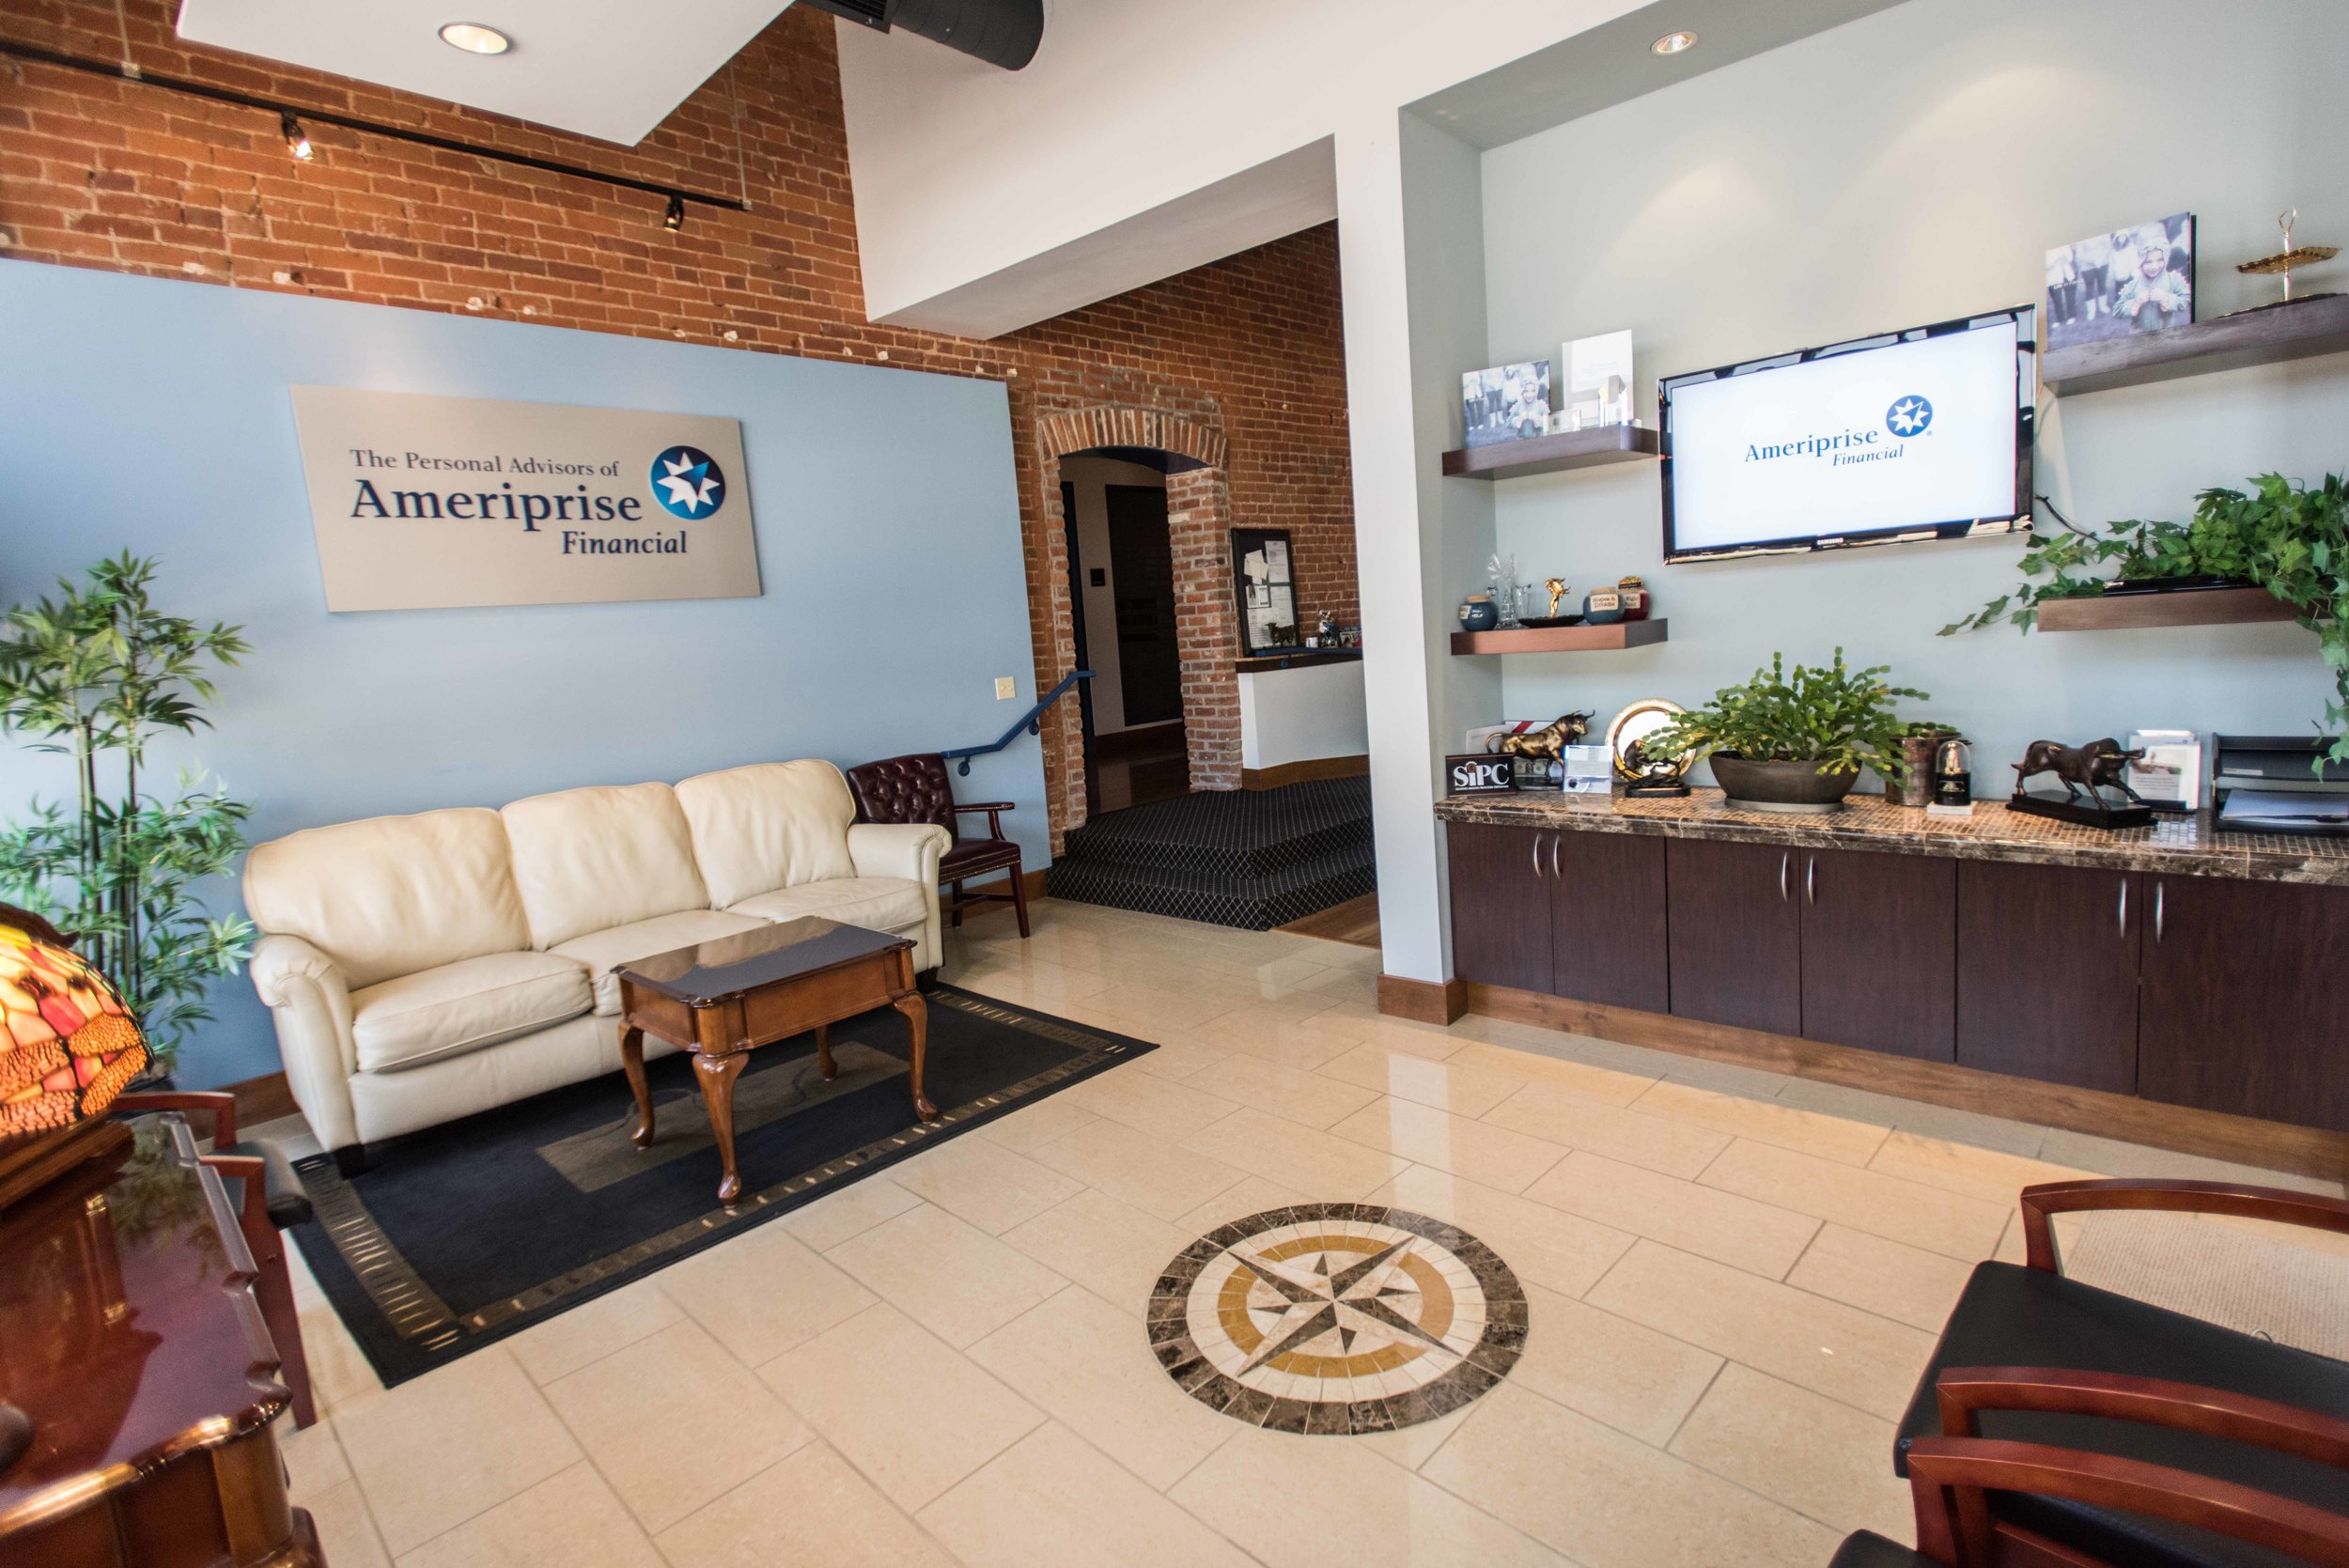 AMERIPRISEFINANCIAL - Client: Ameriprise FinancialArchitect: Architect One P.A.